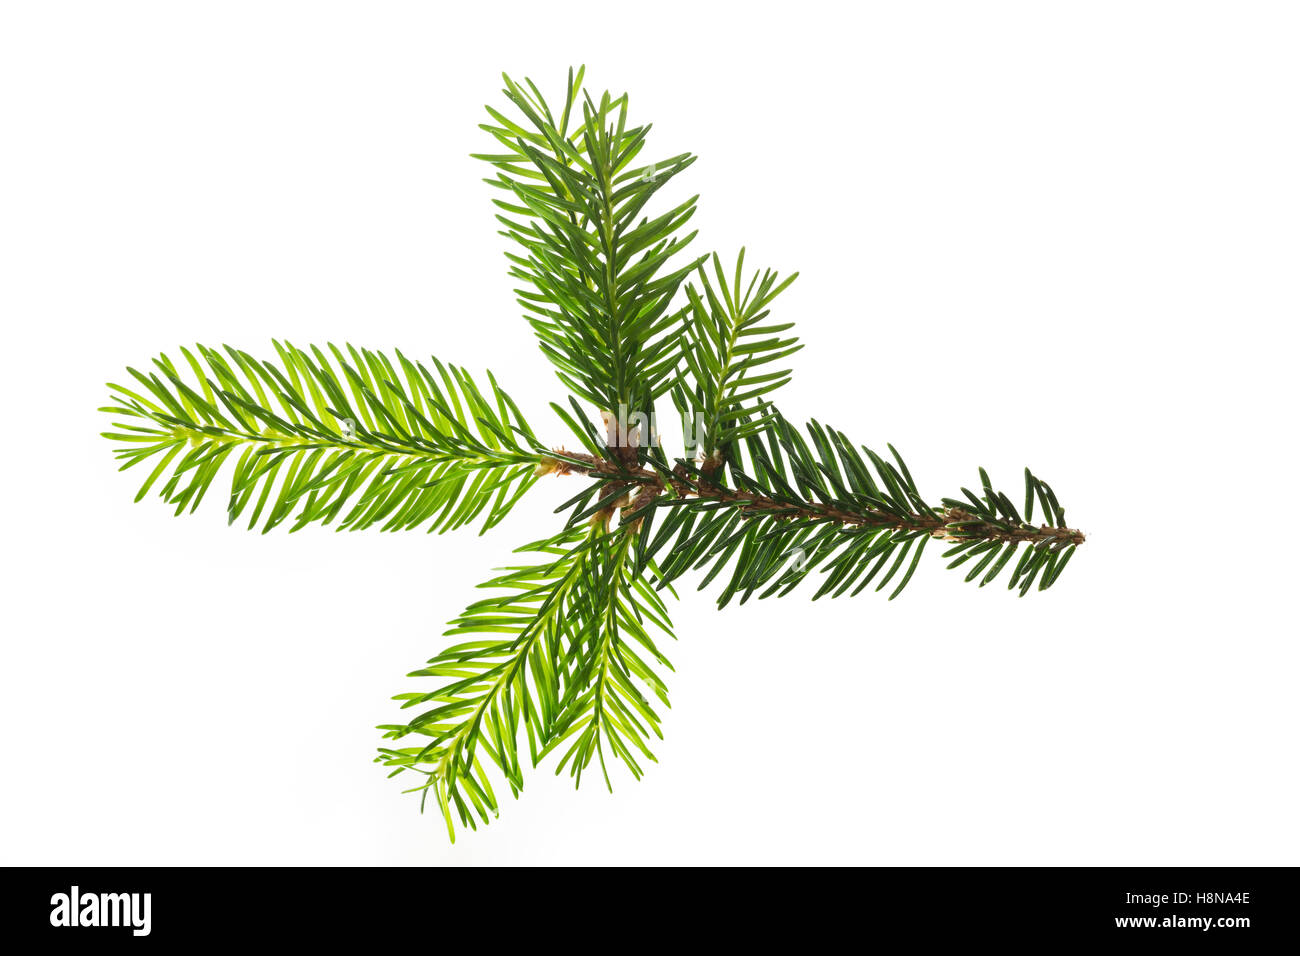 Gewöhnliche Fichte, Rot-Fichte, Rotfichte, Picea abies, Common Spruce, Norway spruce, L'Épicéa, Épicéa commun Stock Photo